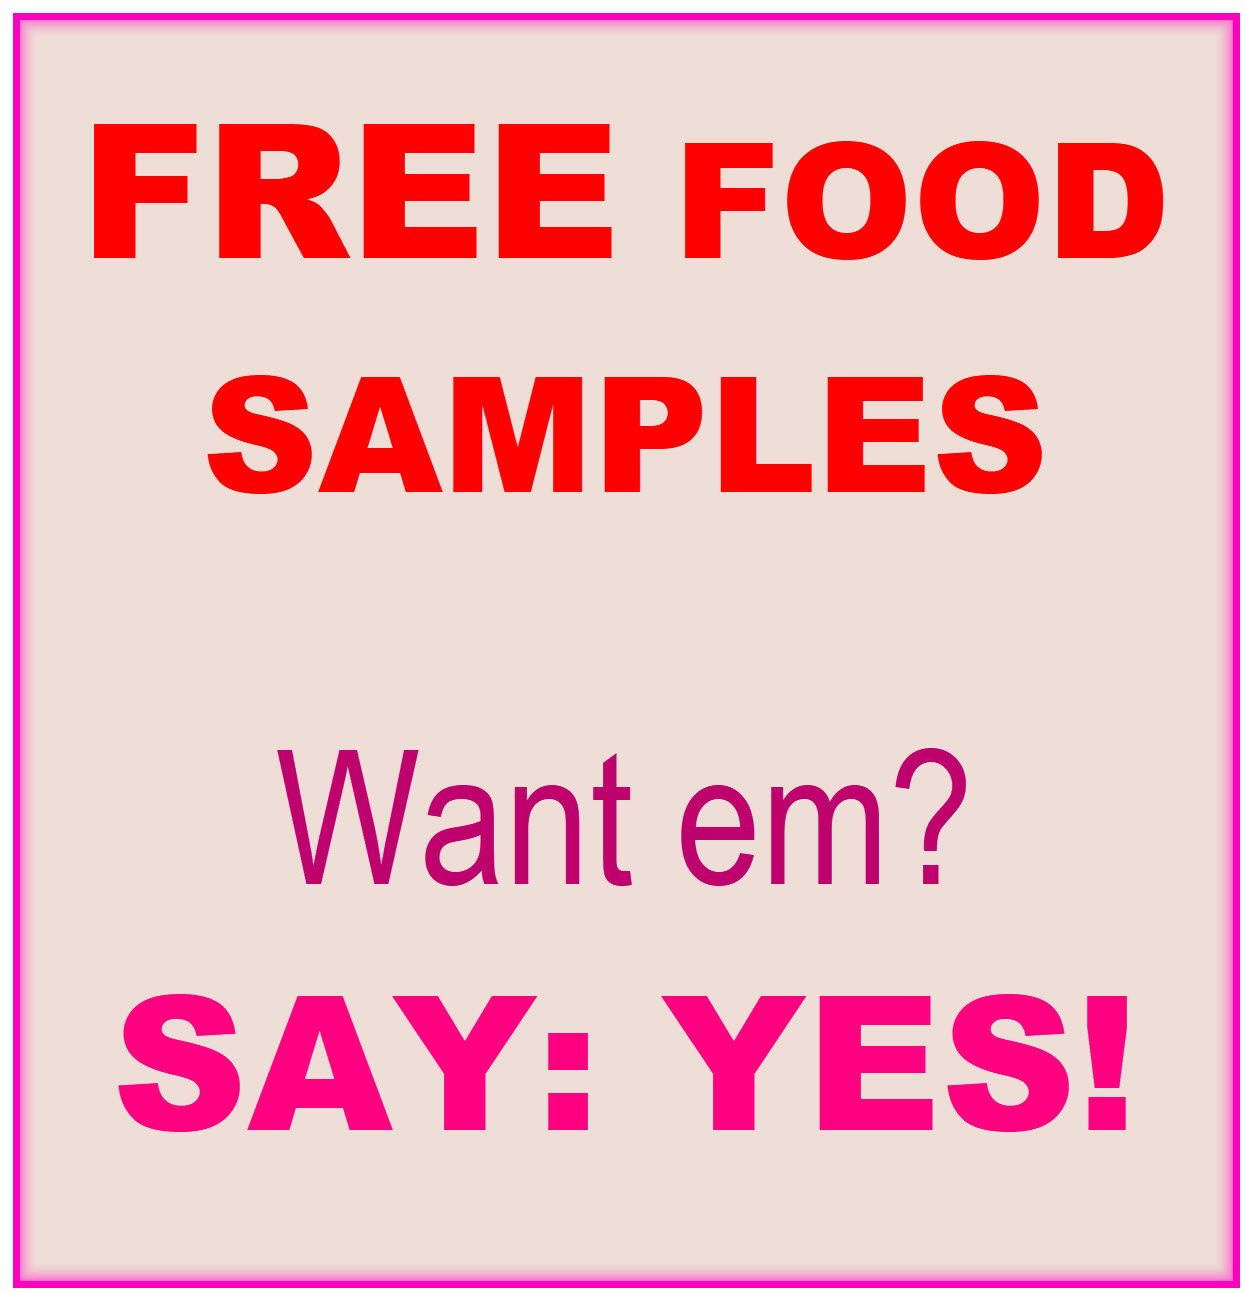 Free Samples Hurry And Get A Ton Of Free Food Samples In The